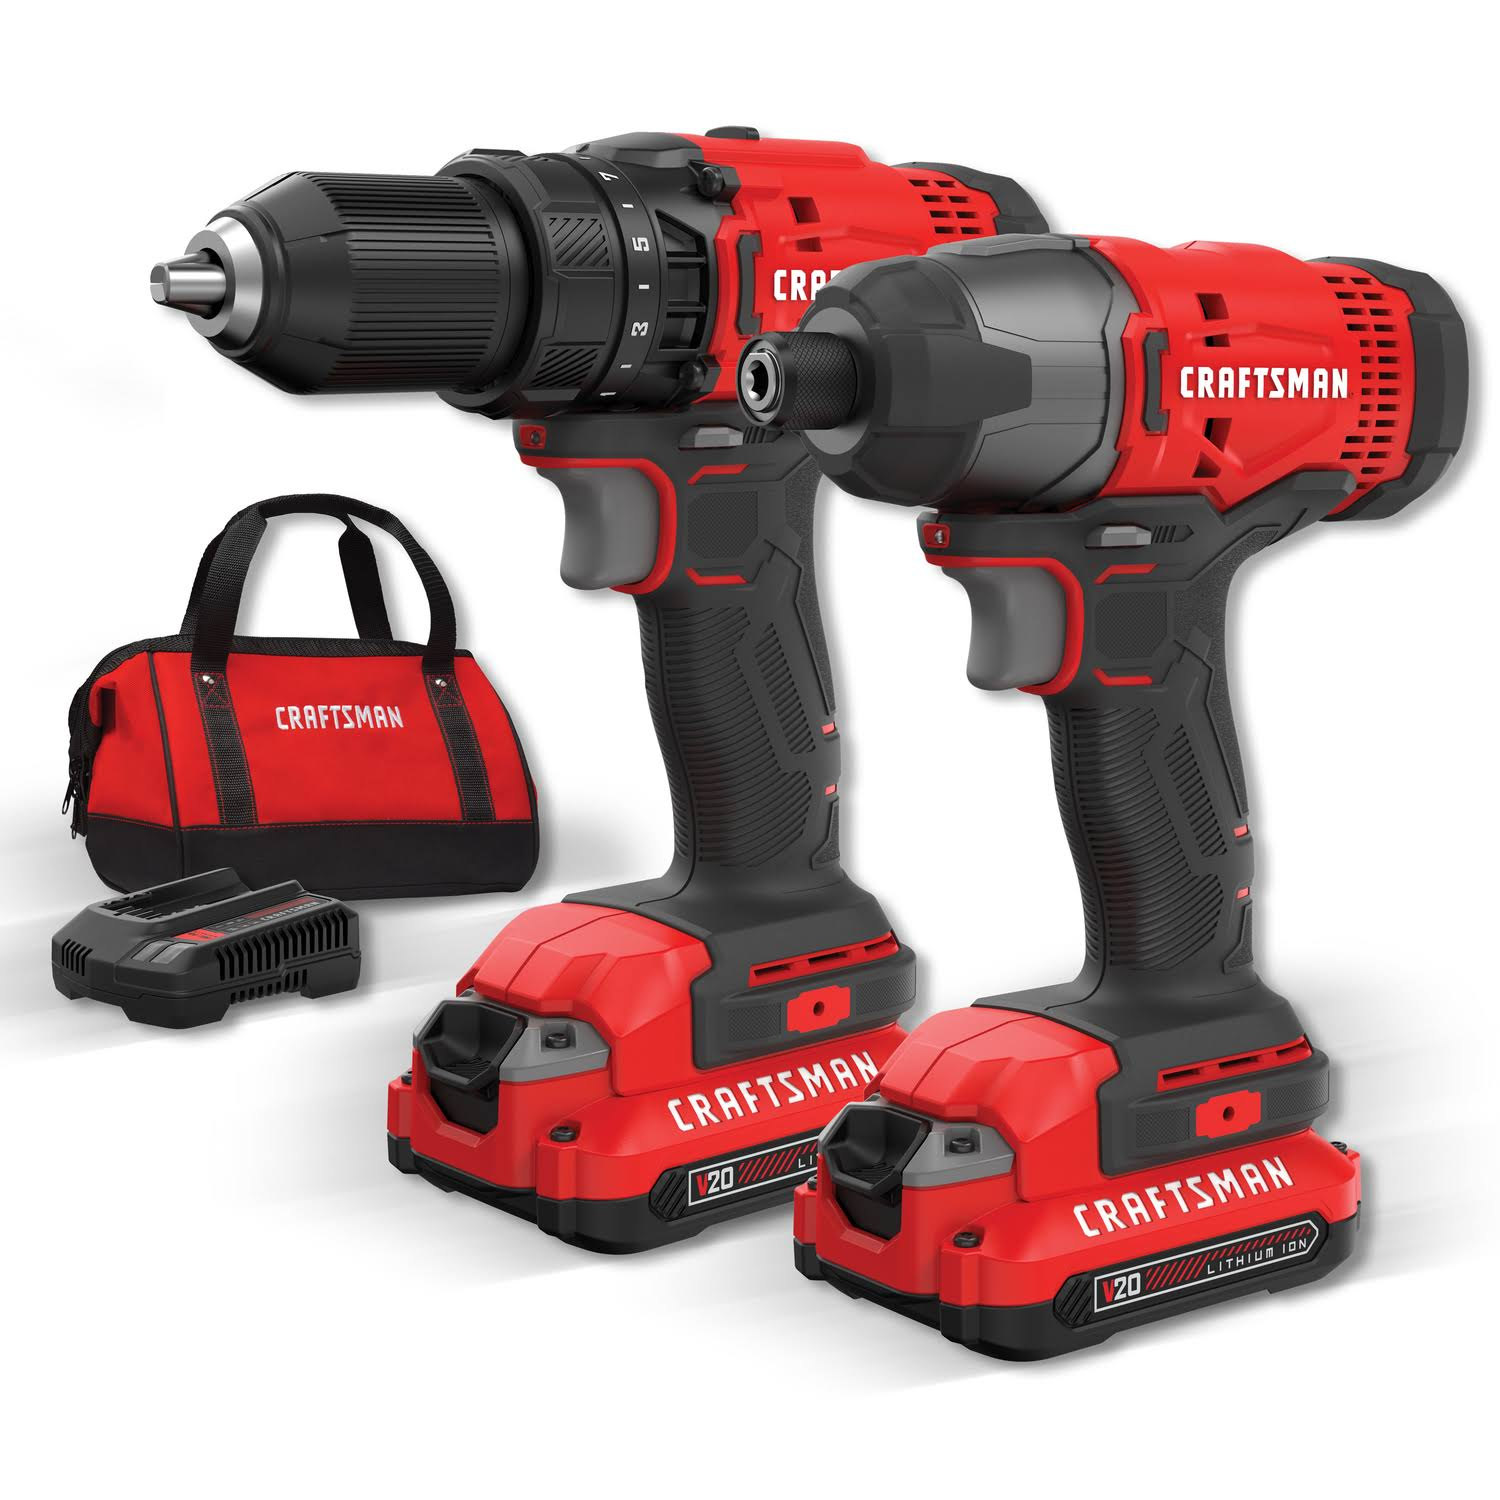 Craftsman 2-Tool Combo Kit